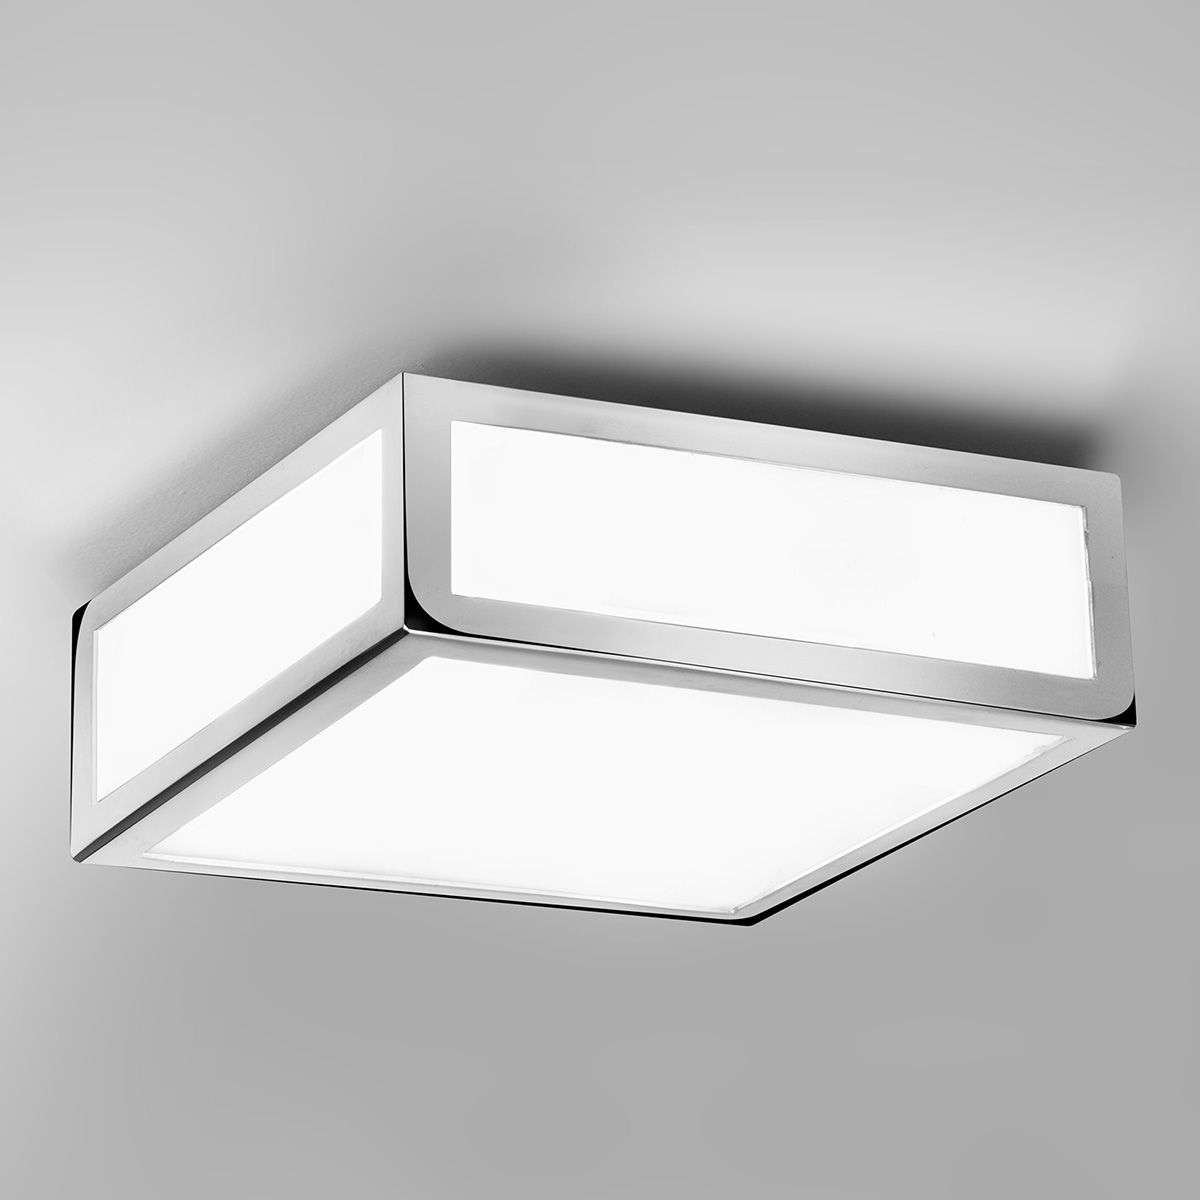 Mashiko Ceiling Light Simple 20 x 20 cm-1020302-32